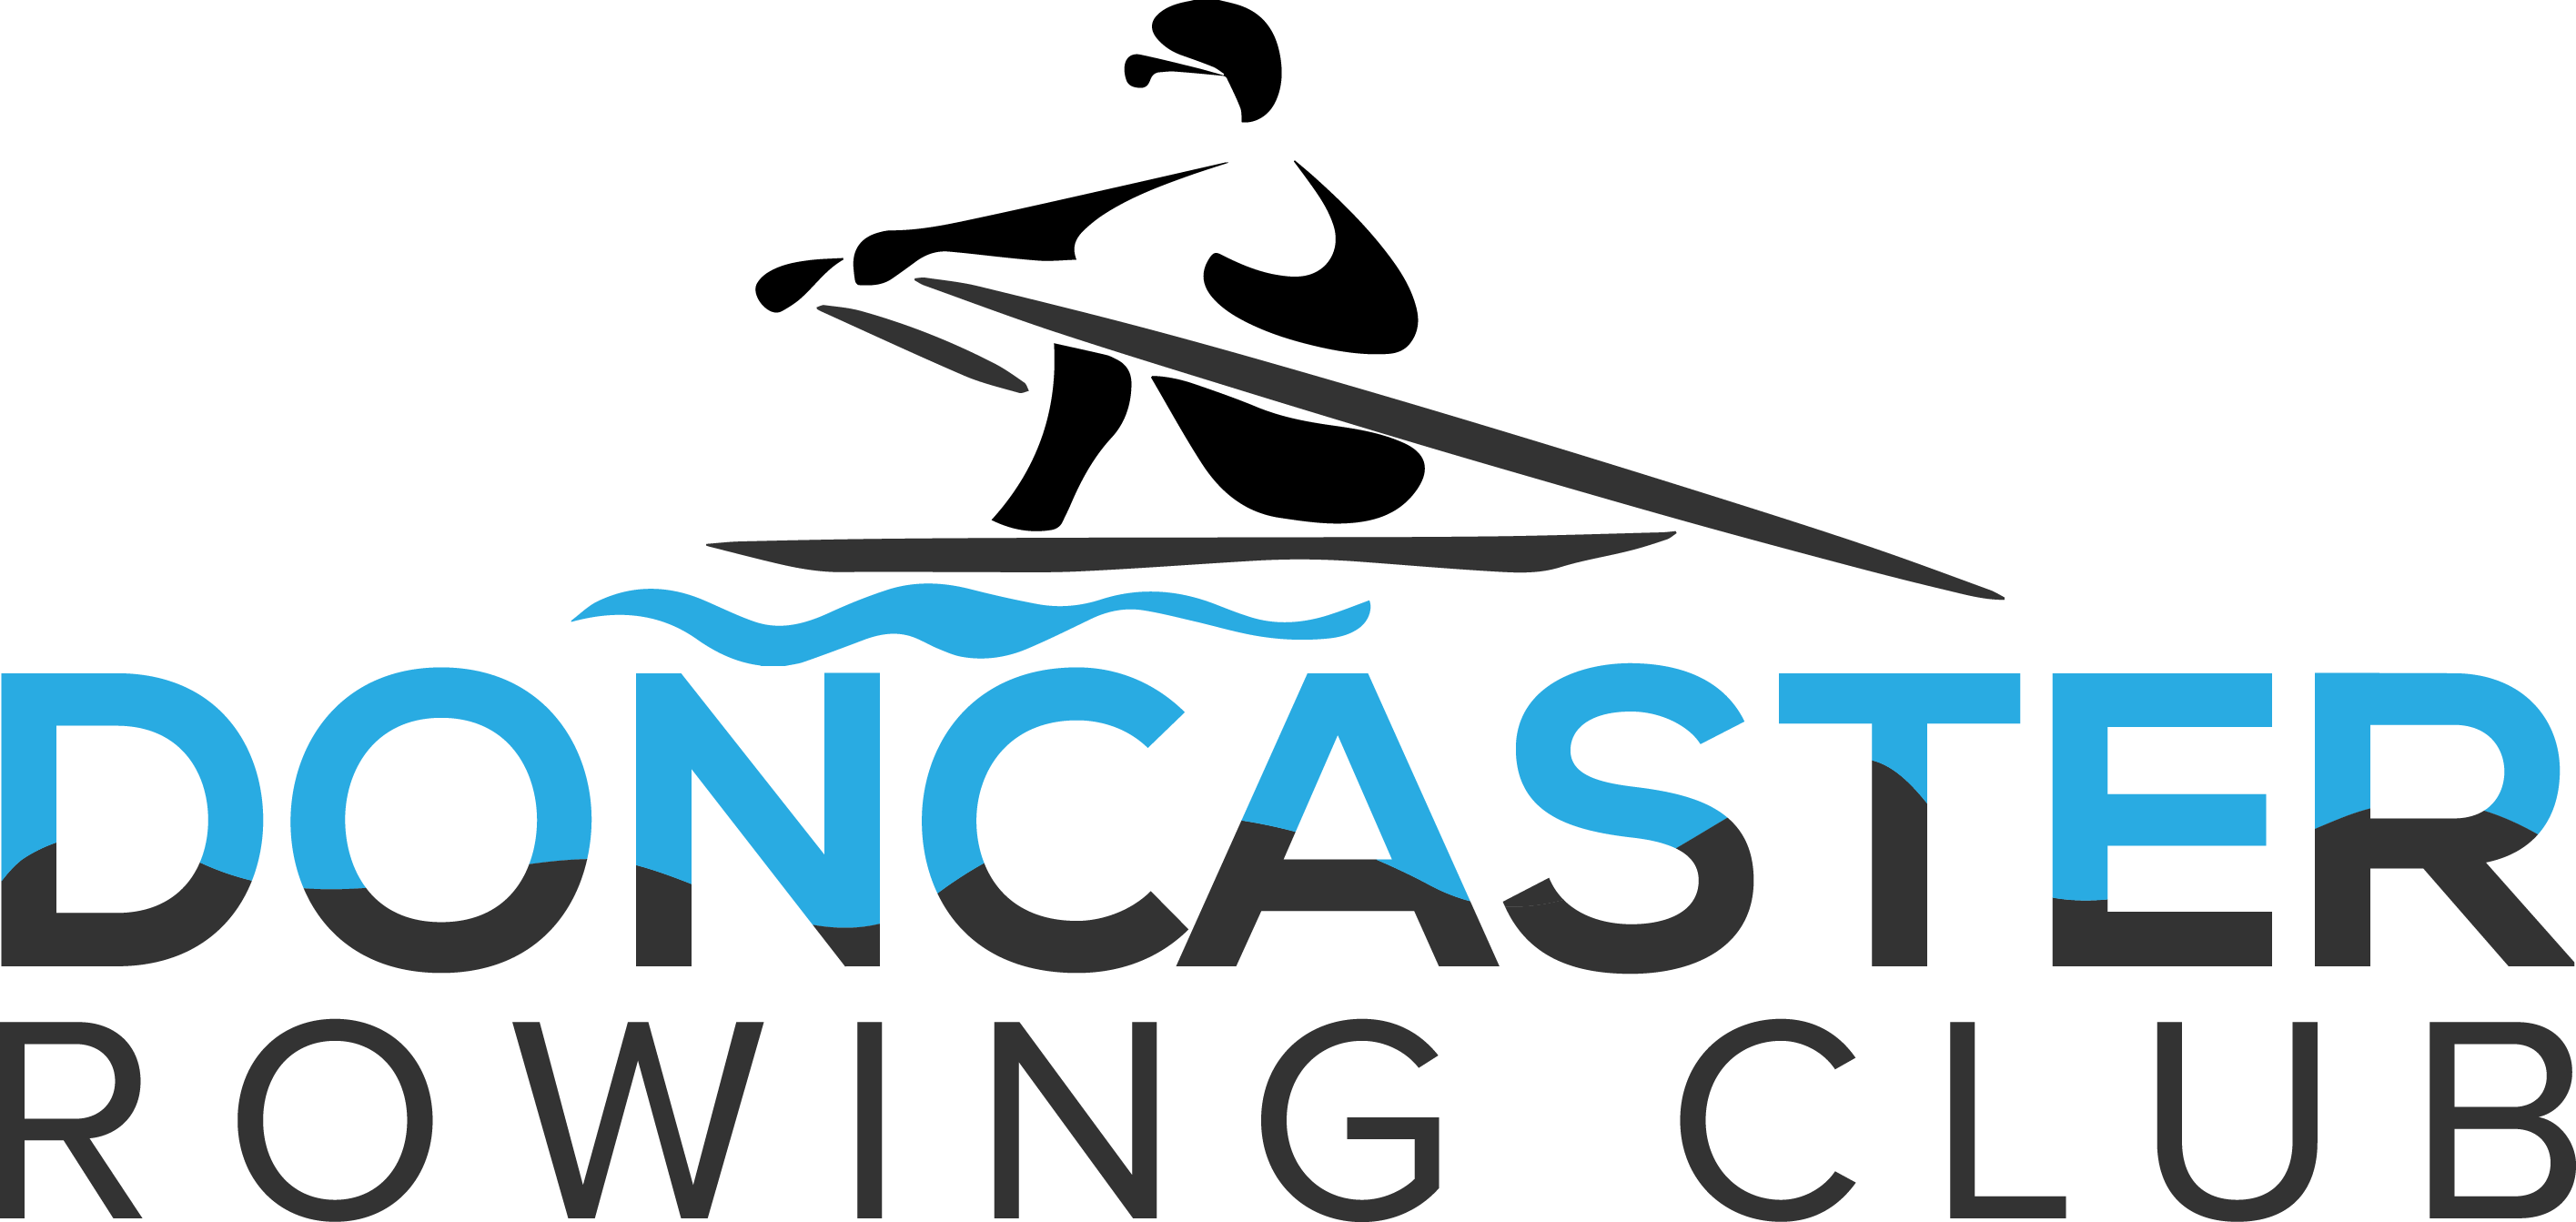 Doncaster Rowing Club -